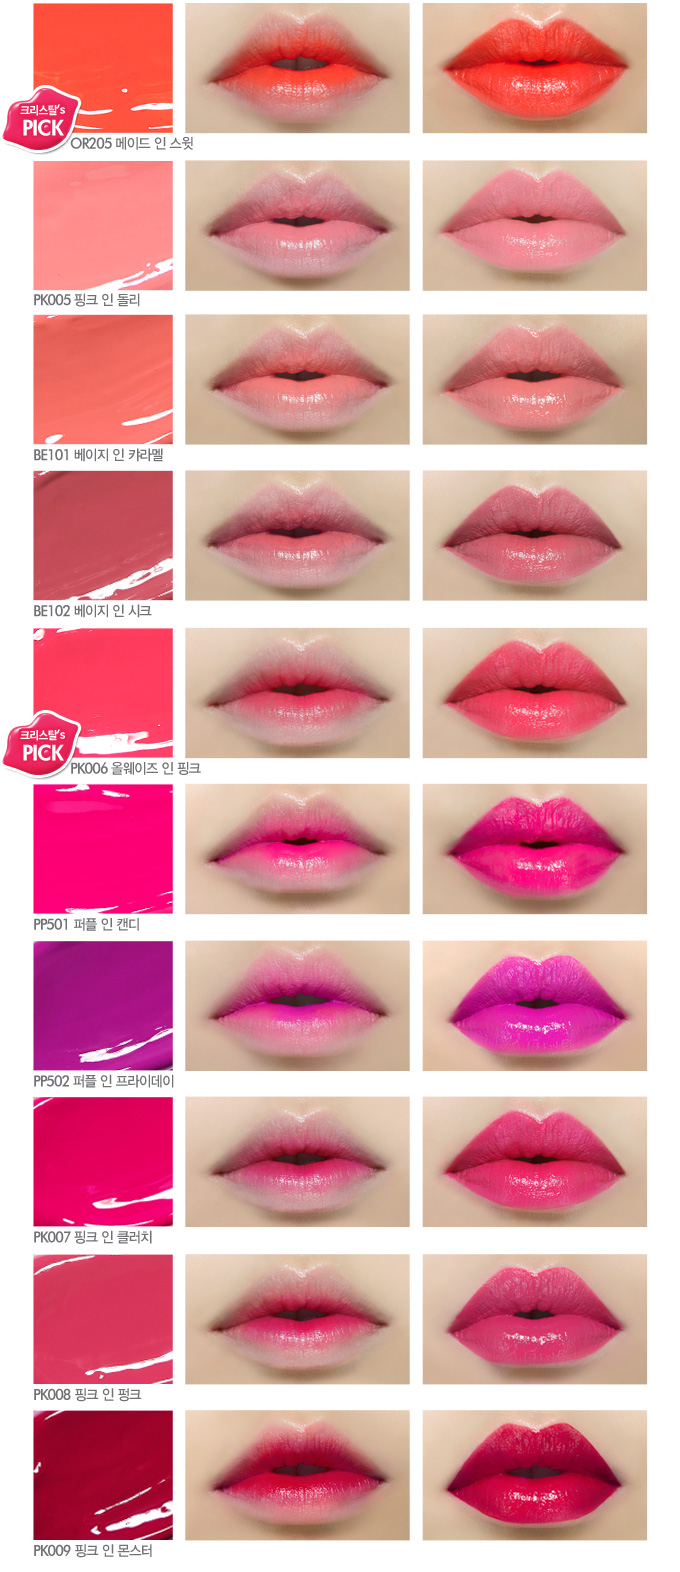 Etude House Color In Liquid Lips Release + Swatches | The Wild Reverie.